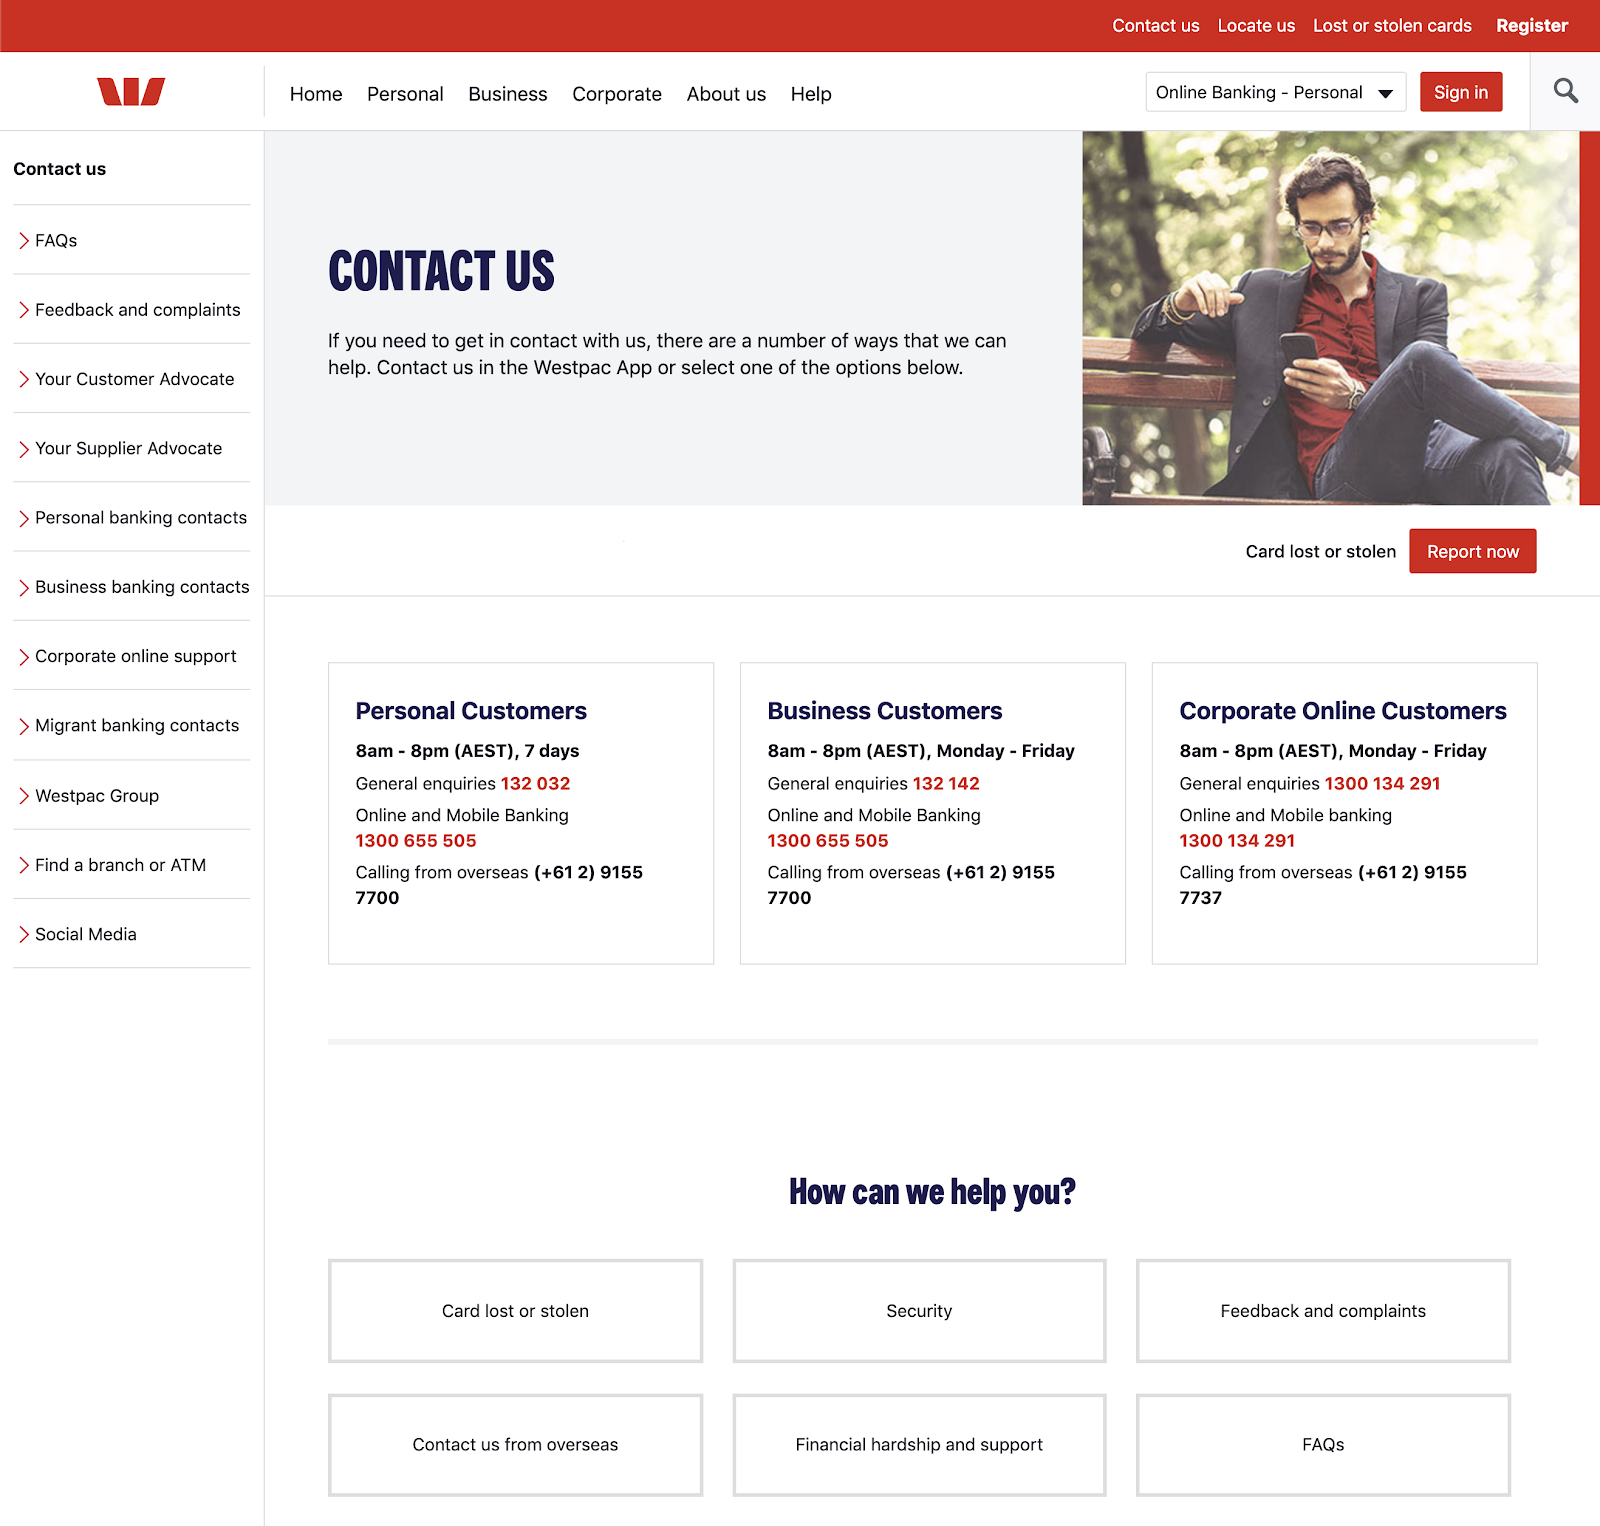 Westpac contact us page